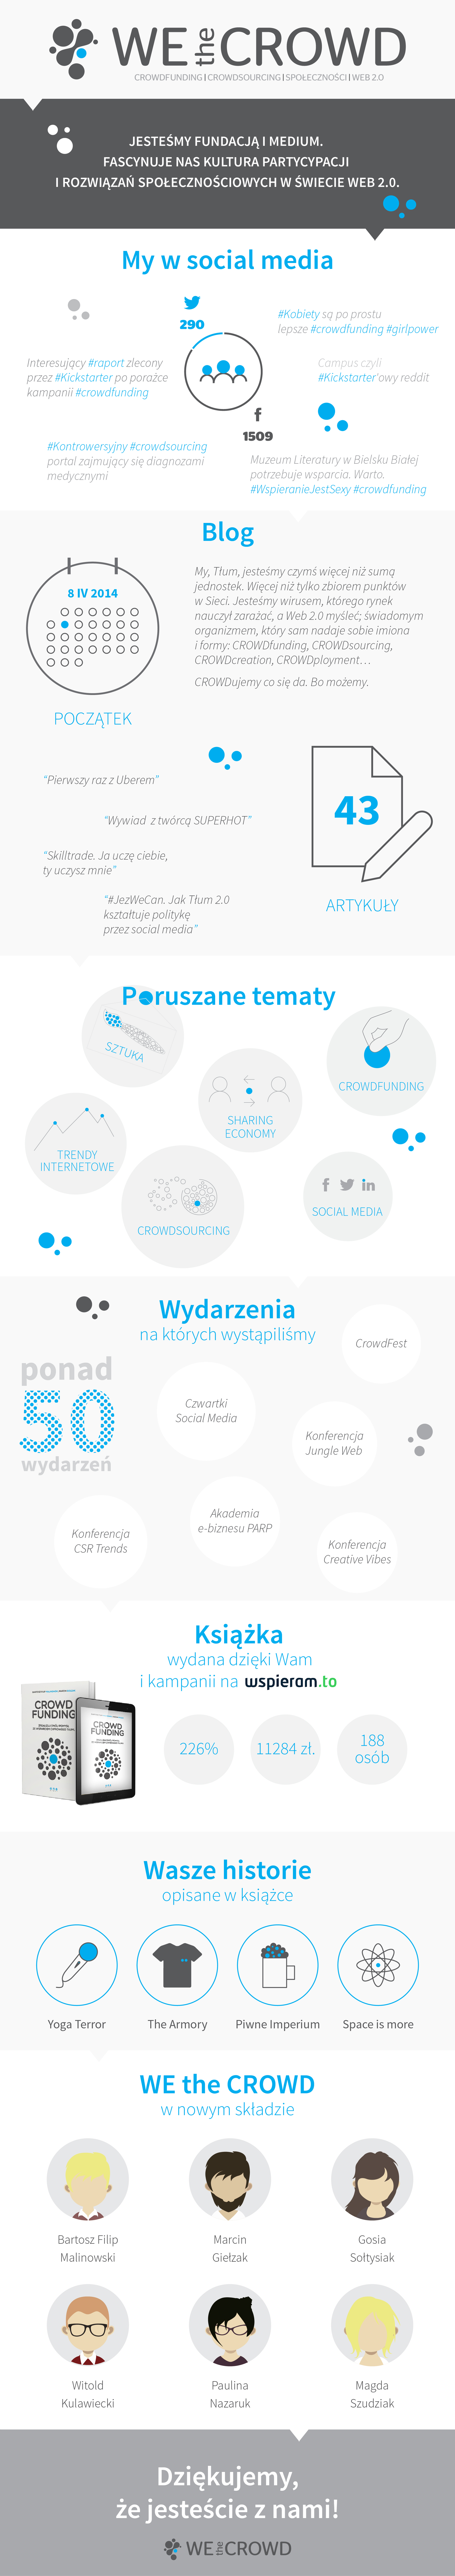 WE the CROWD - infografika